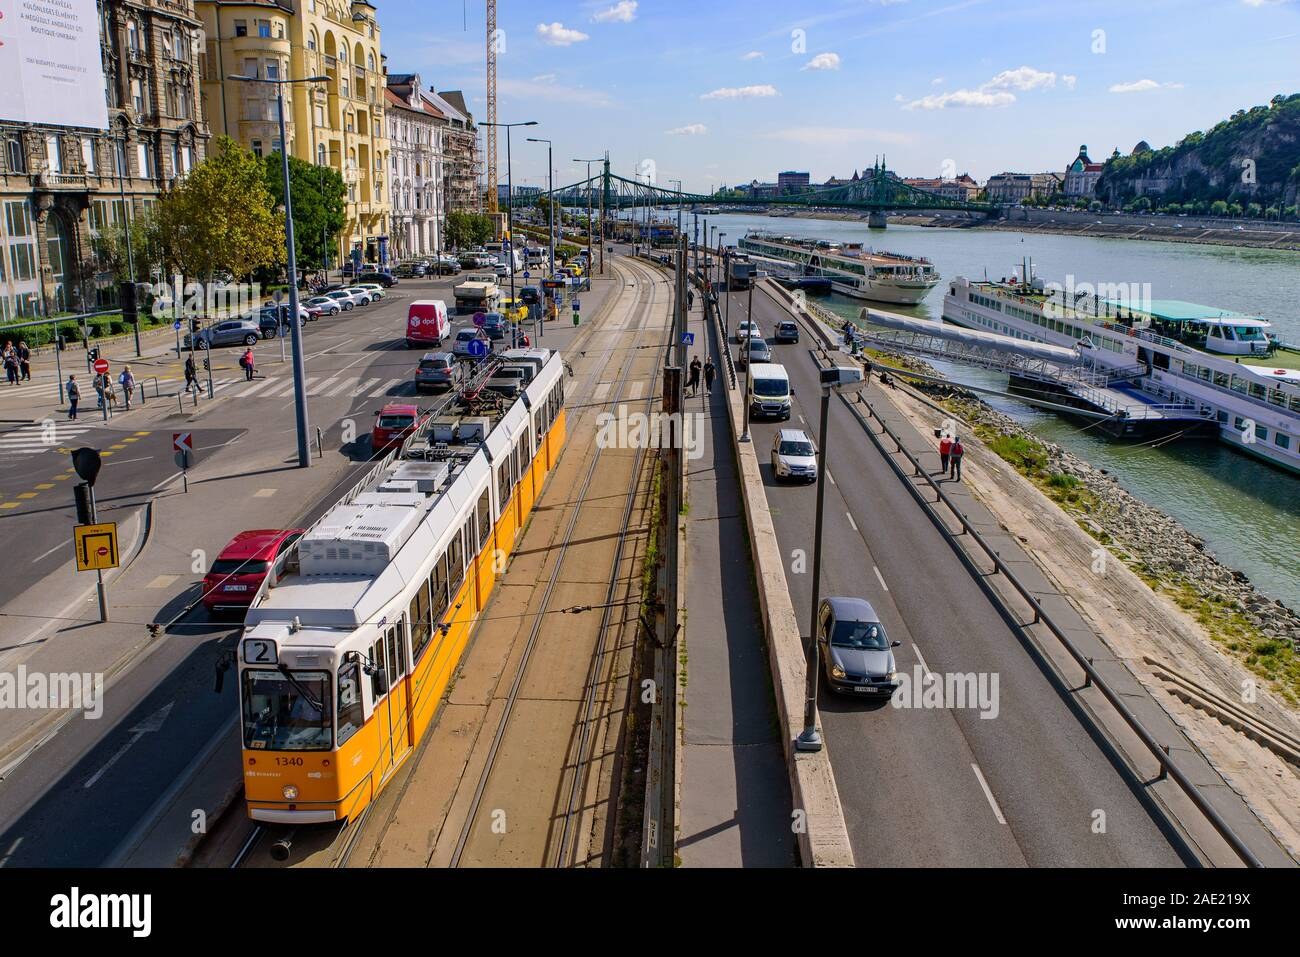 Tram on the road in Budapest, Hungary Stock Photo